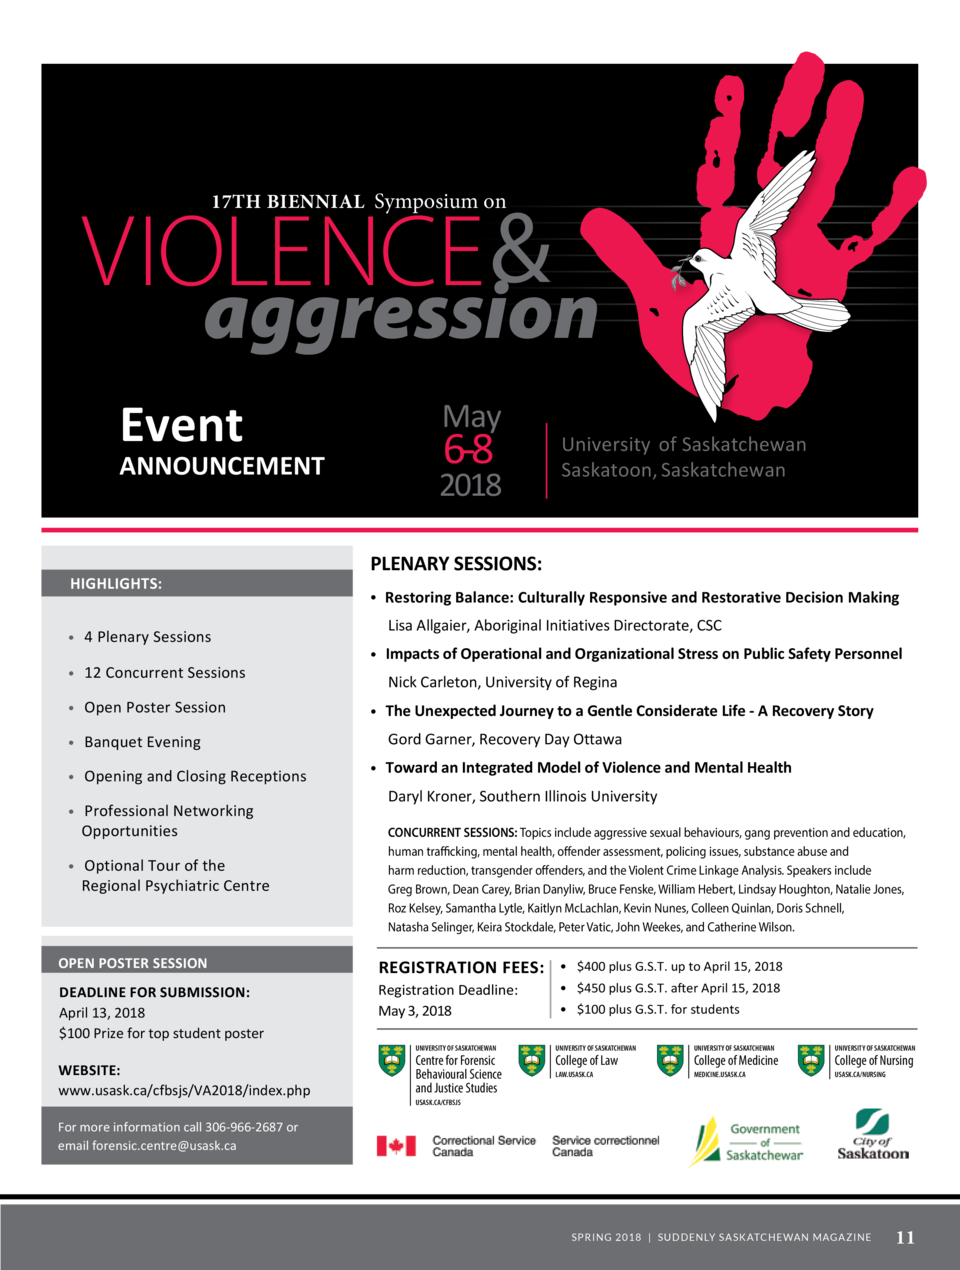 17th Biennial Symposium on  T  VIOLENCE   aggression  he Centre for Forensic Behavioural Science and Justice Studies at th...